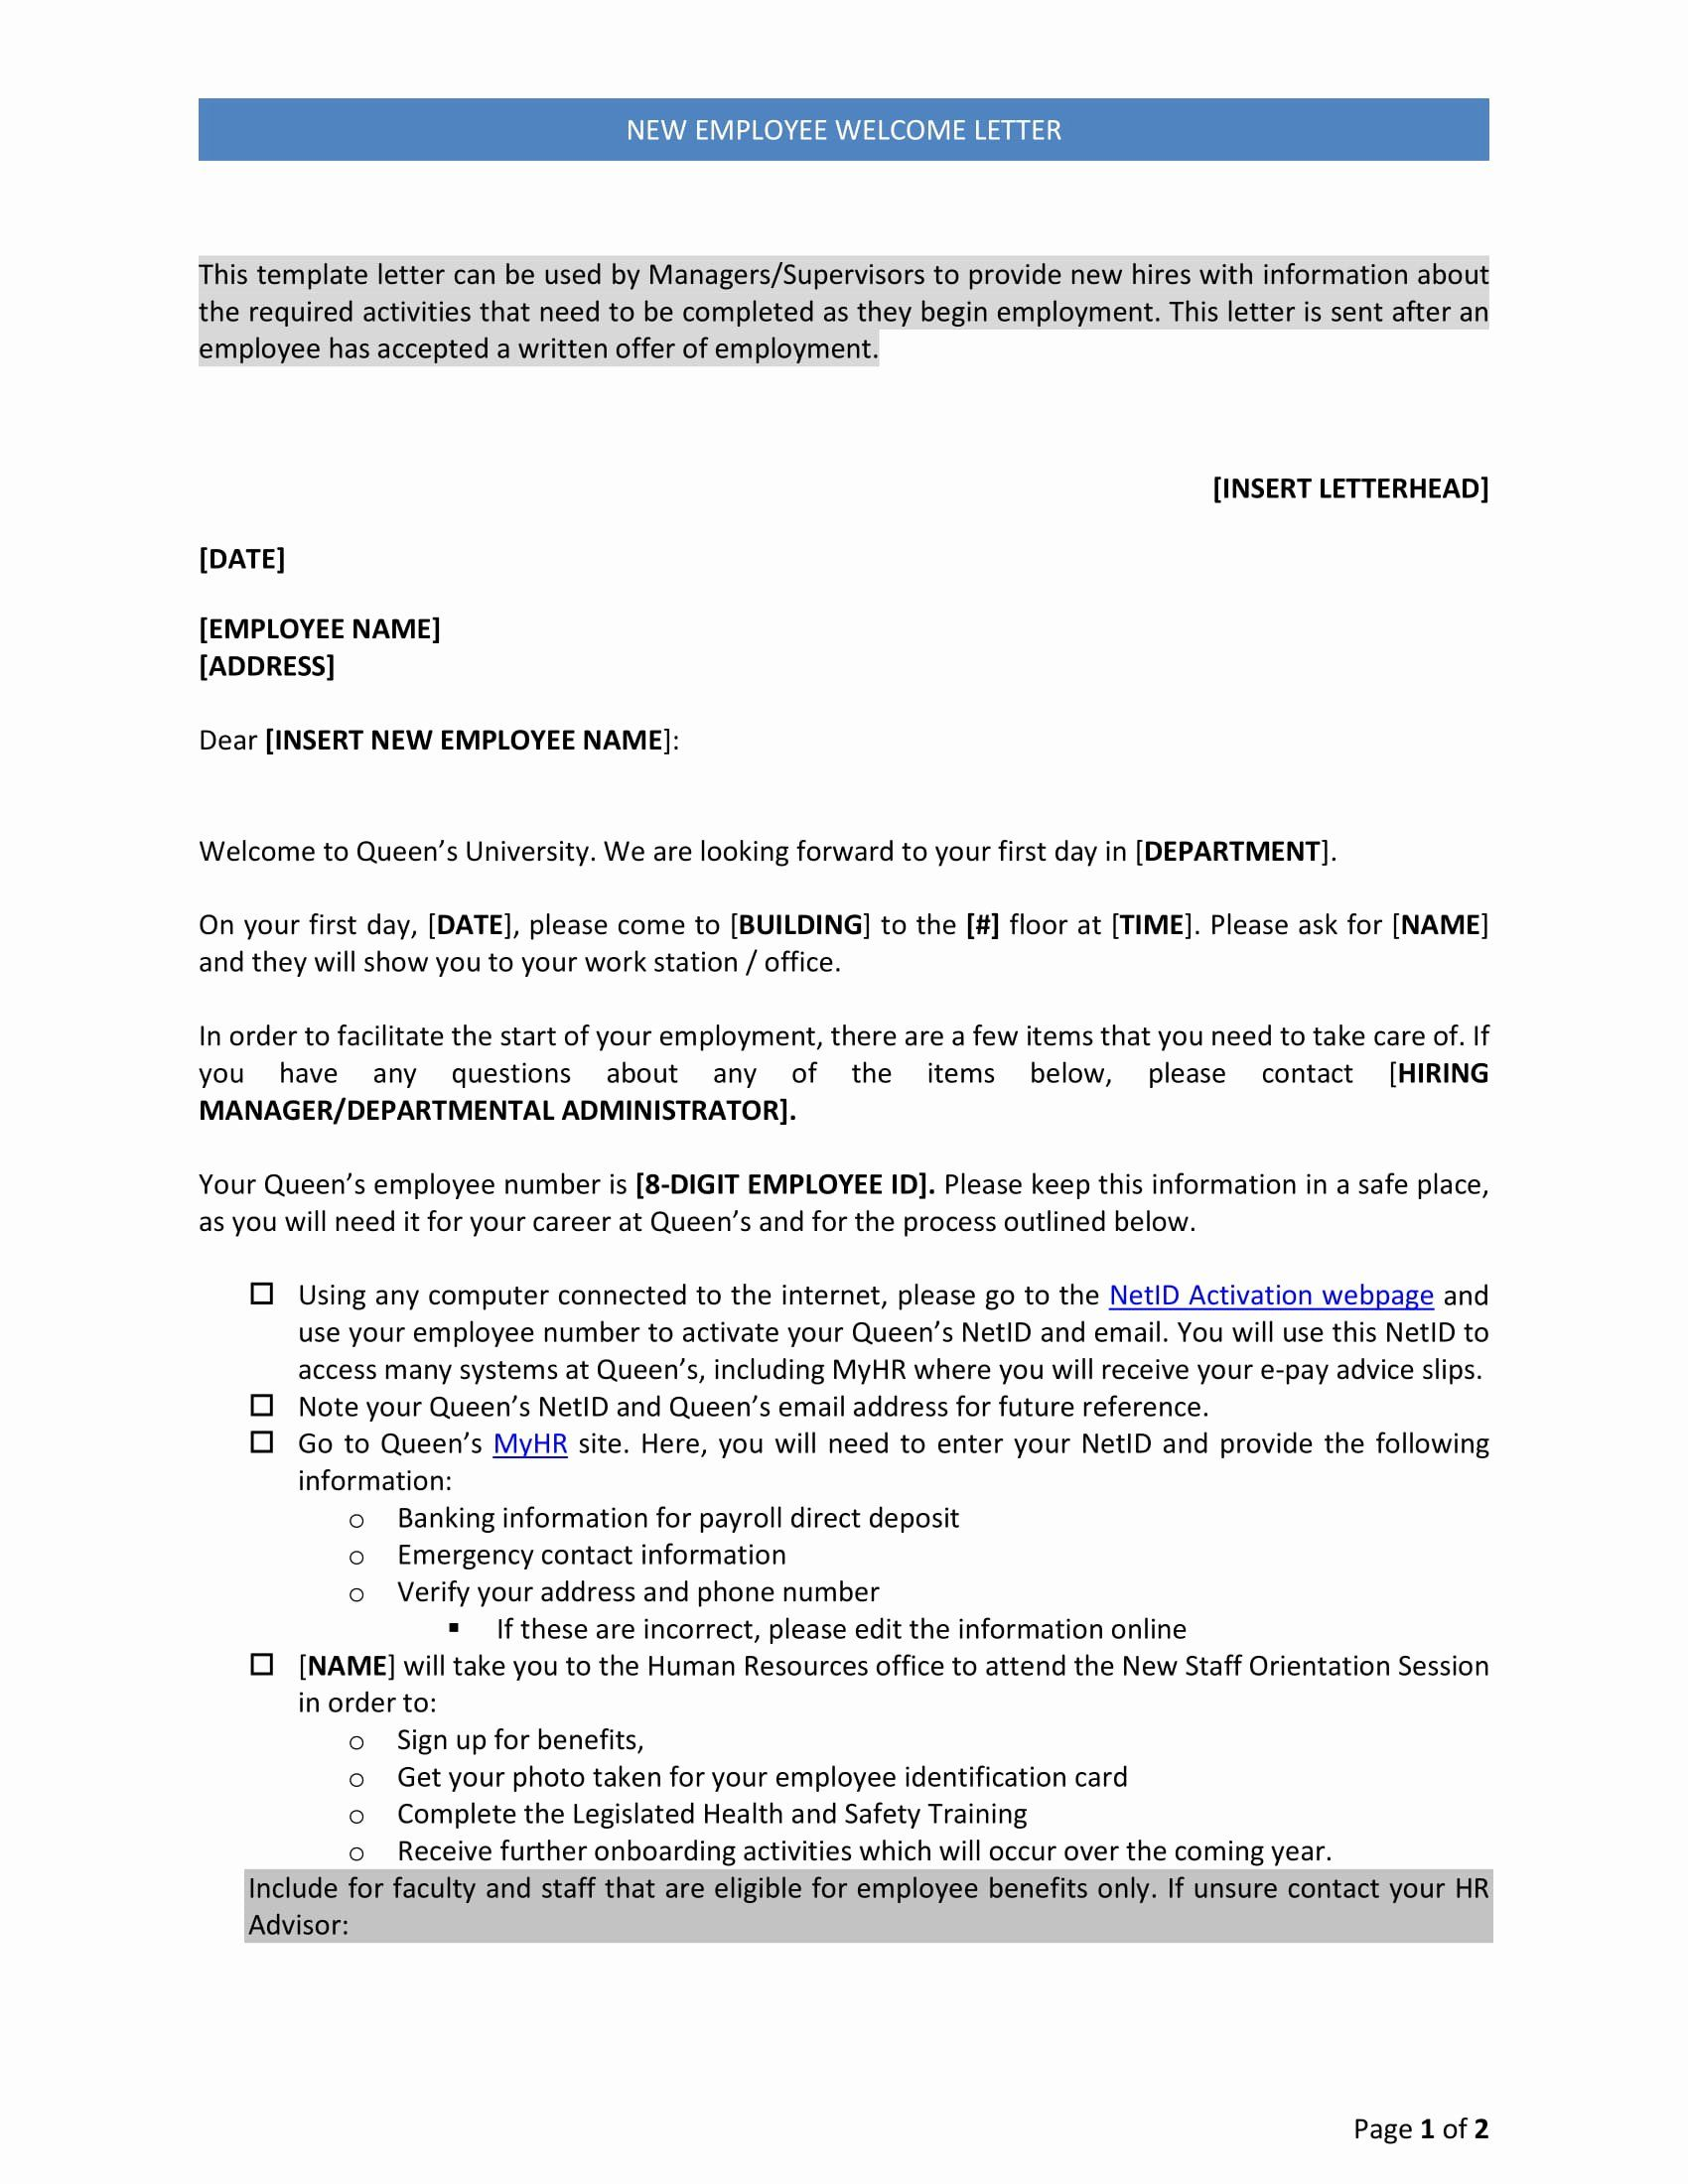 Welcome Letter To New Employee Luxury 9 New Hire Wel E Letter Examples Pdf Welcome Letter Lettering Professional Cover Letter Template